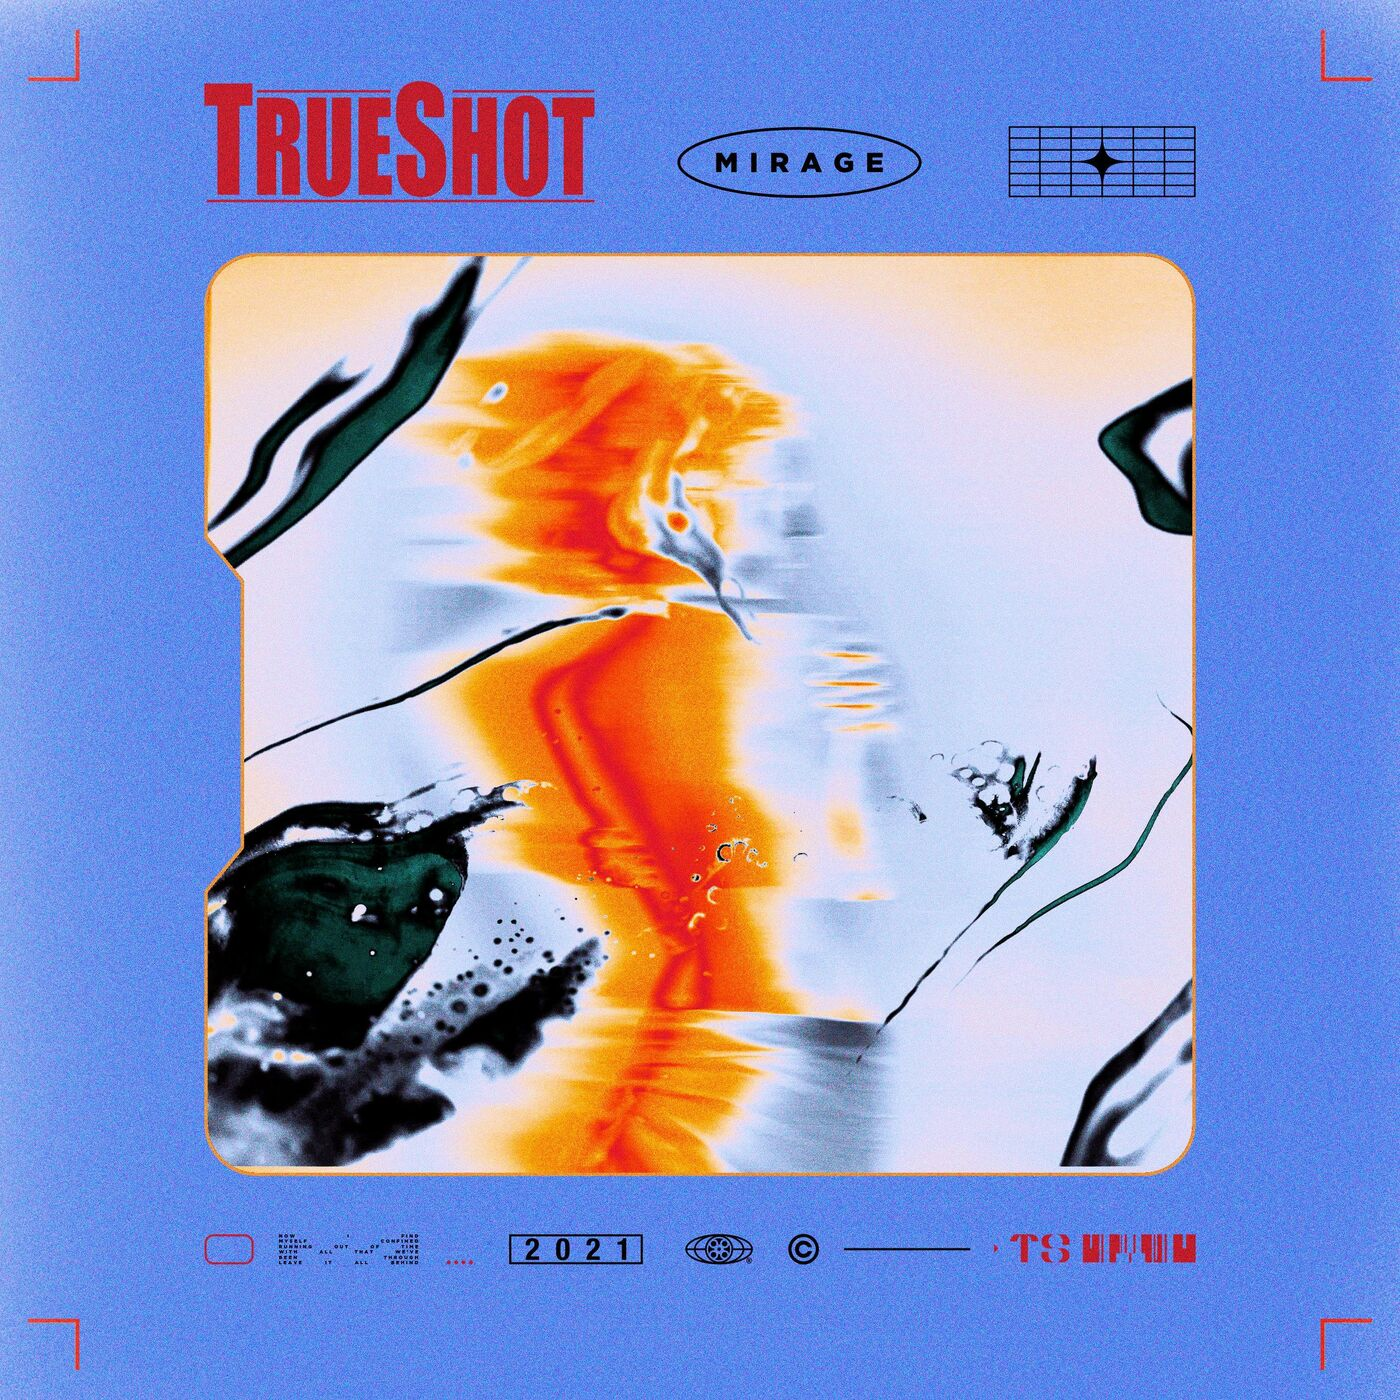 TrueShot - Mirage [single] (2021)